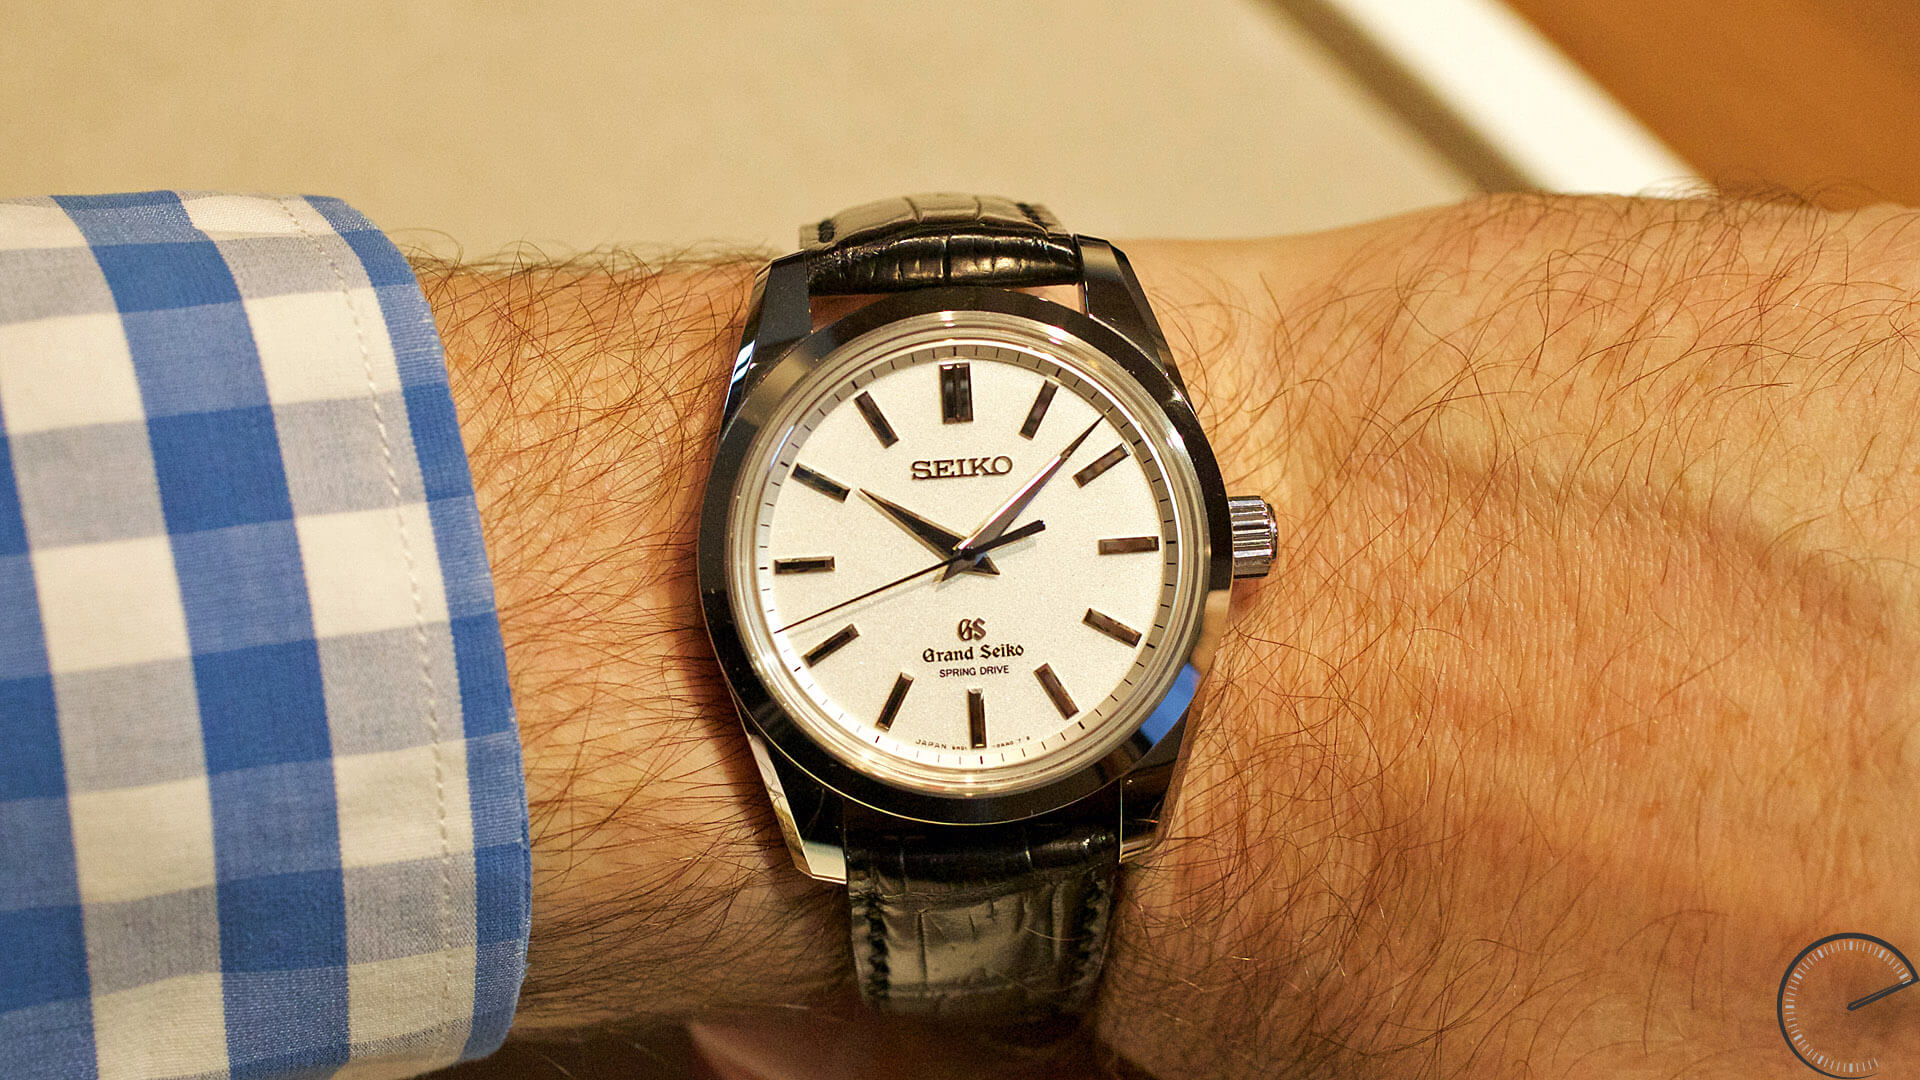 Grand_Seiko_Spring_Drive_8_day_Power_Reserve_SBGD001_wrist - ESCAPEMENT magazine - watch blog by Angus Davies